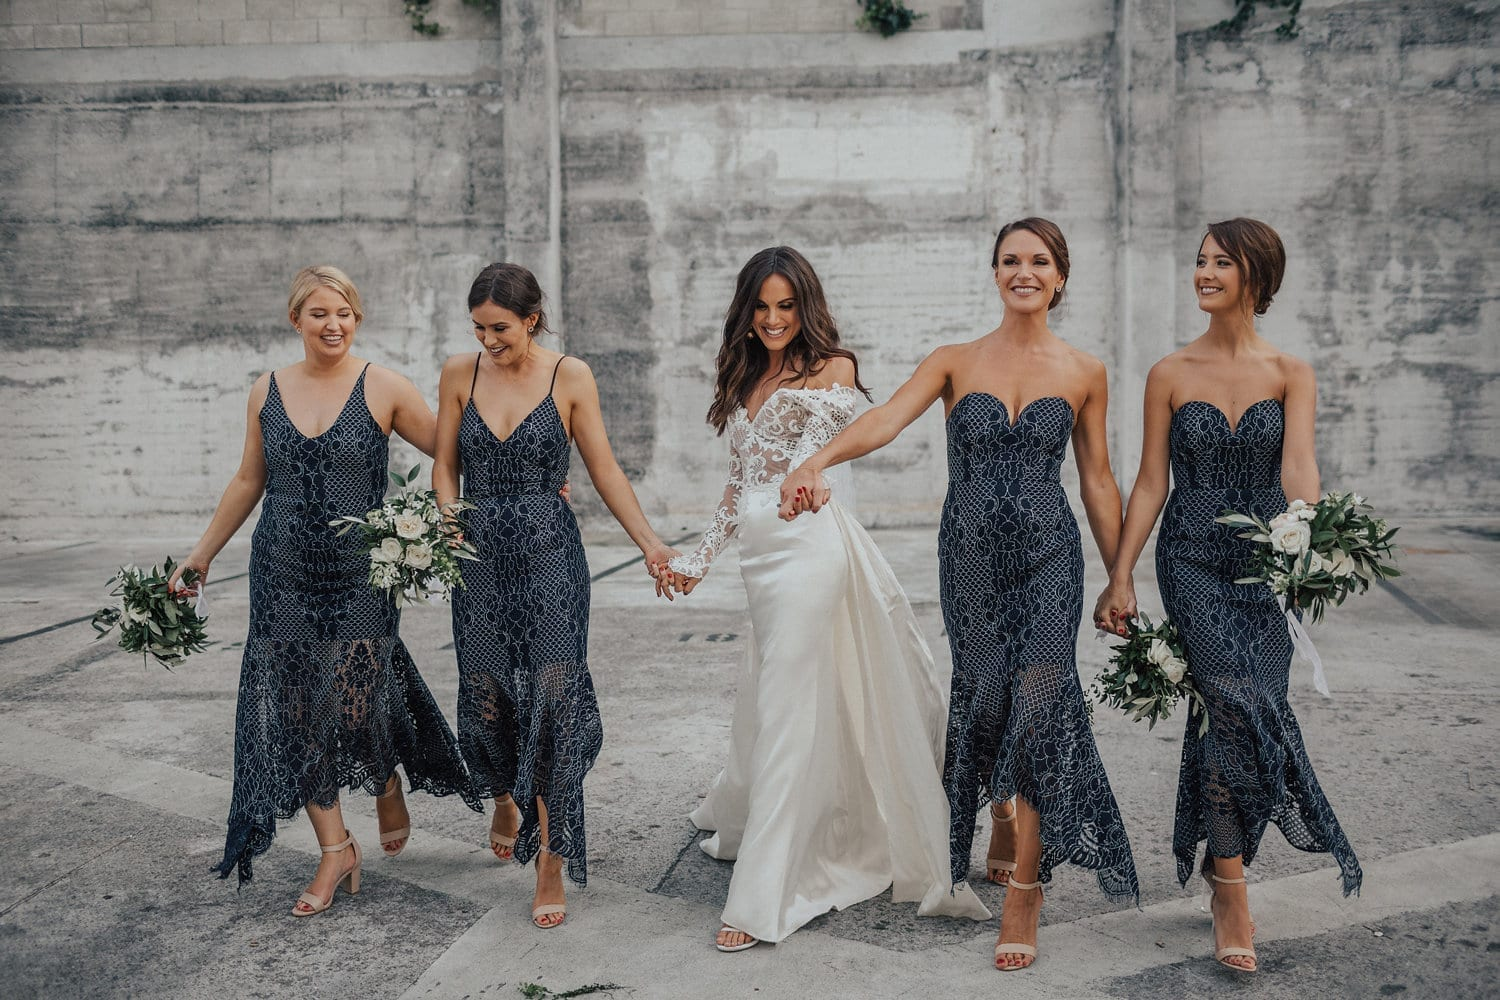 Real Weddings | Vinka Design | Real Brides Wearing Vinka Gowns | Hannah and Campbell - Hannah wearing bespoke Vinka Design, beaded lace bodice with deep V neckline , silk skirt and overtrain with bridesmaids